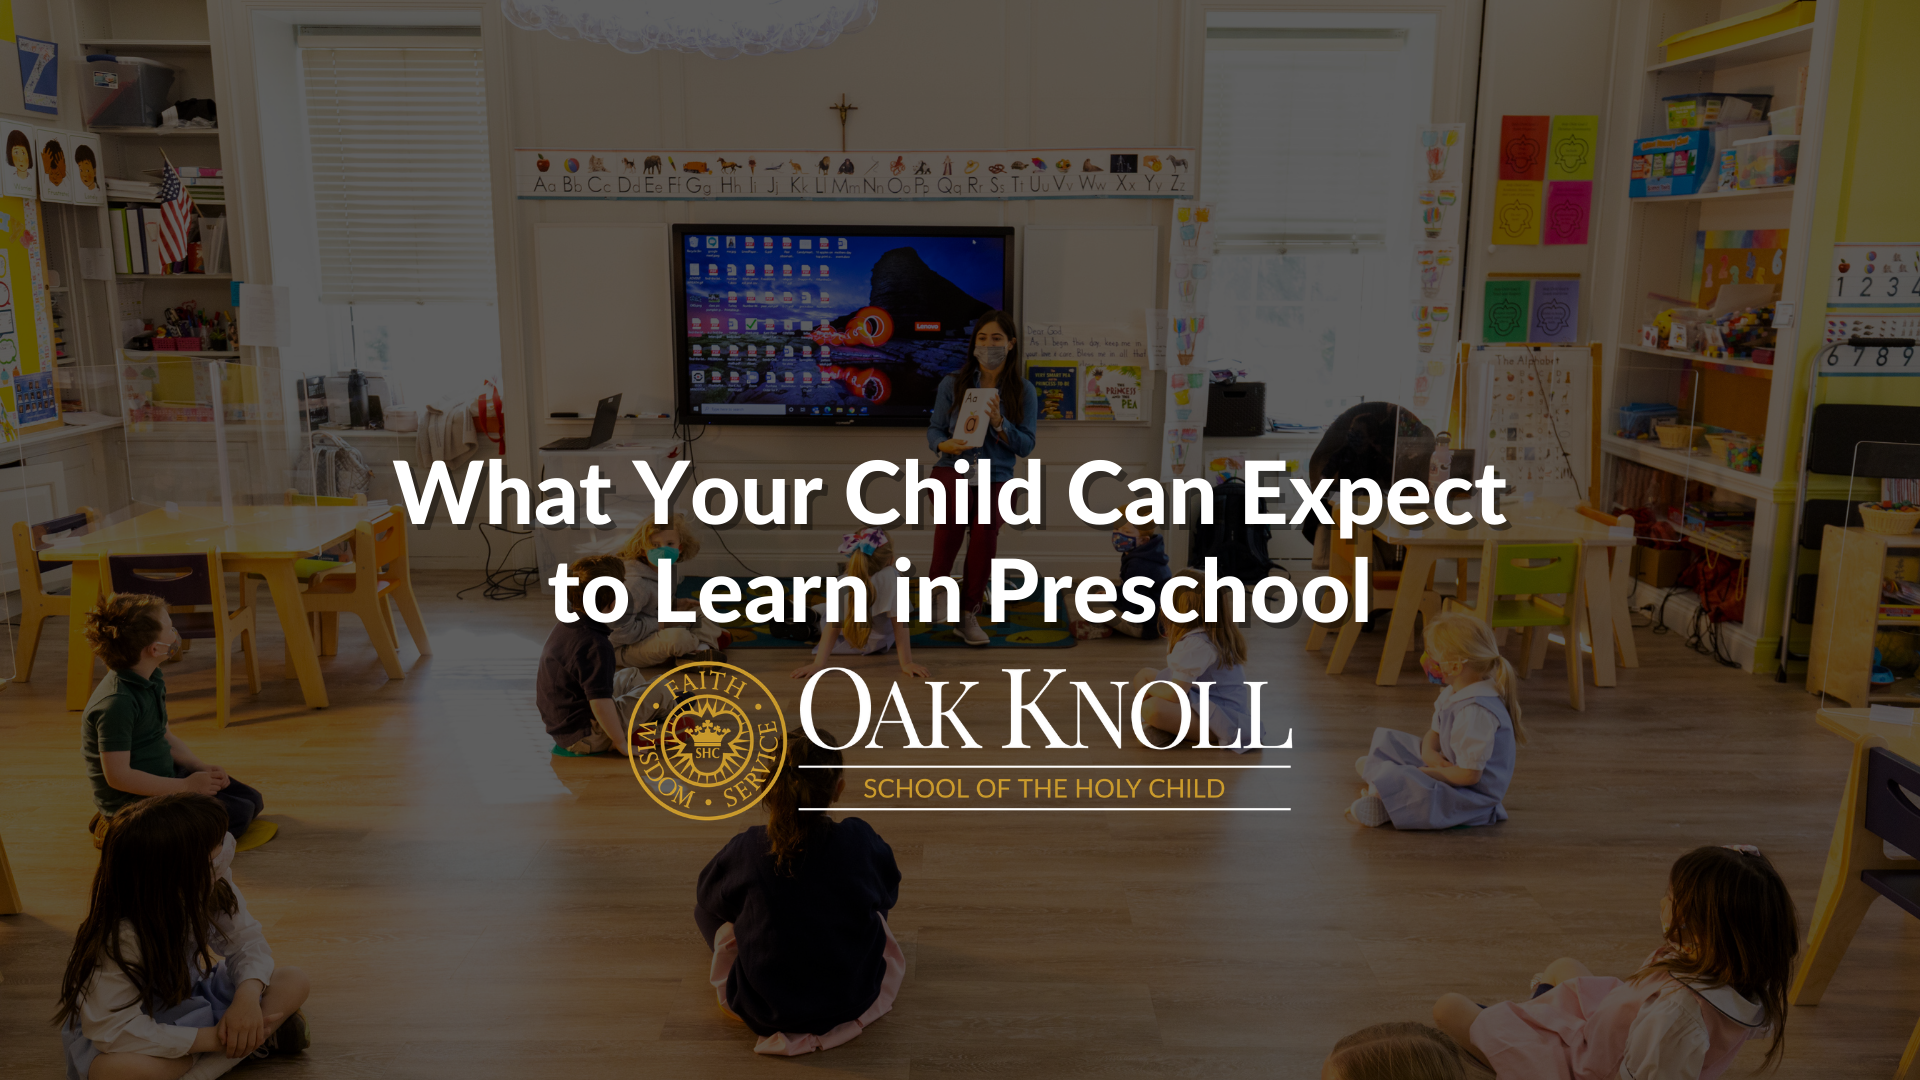 What Your Child Can Expect to Learn in Preschool